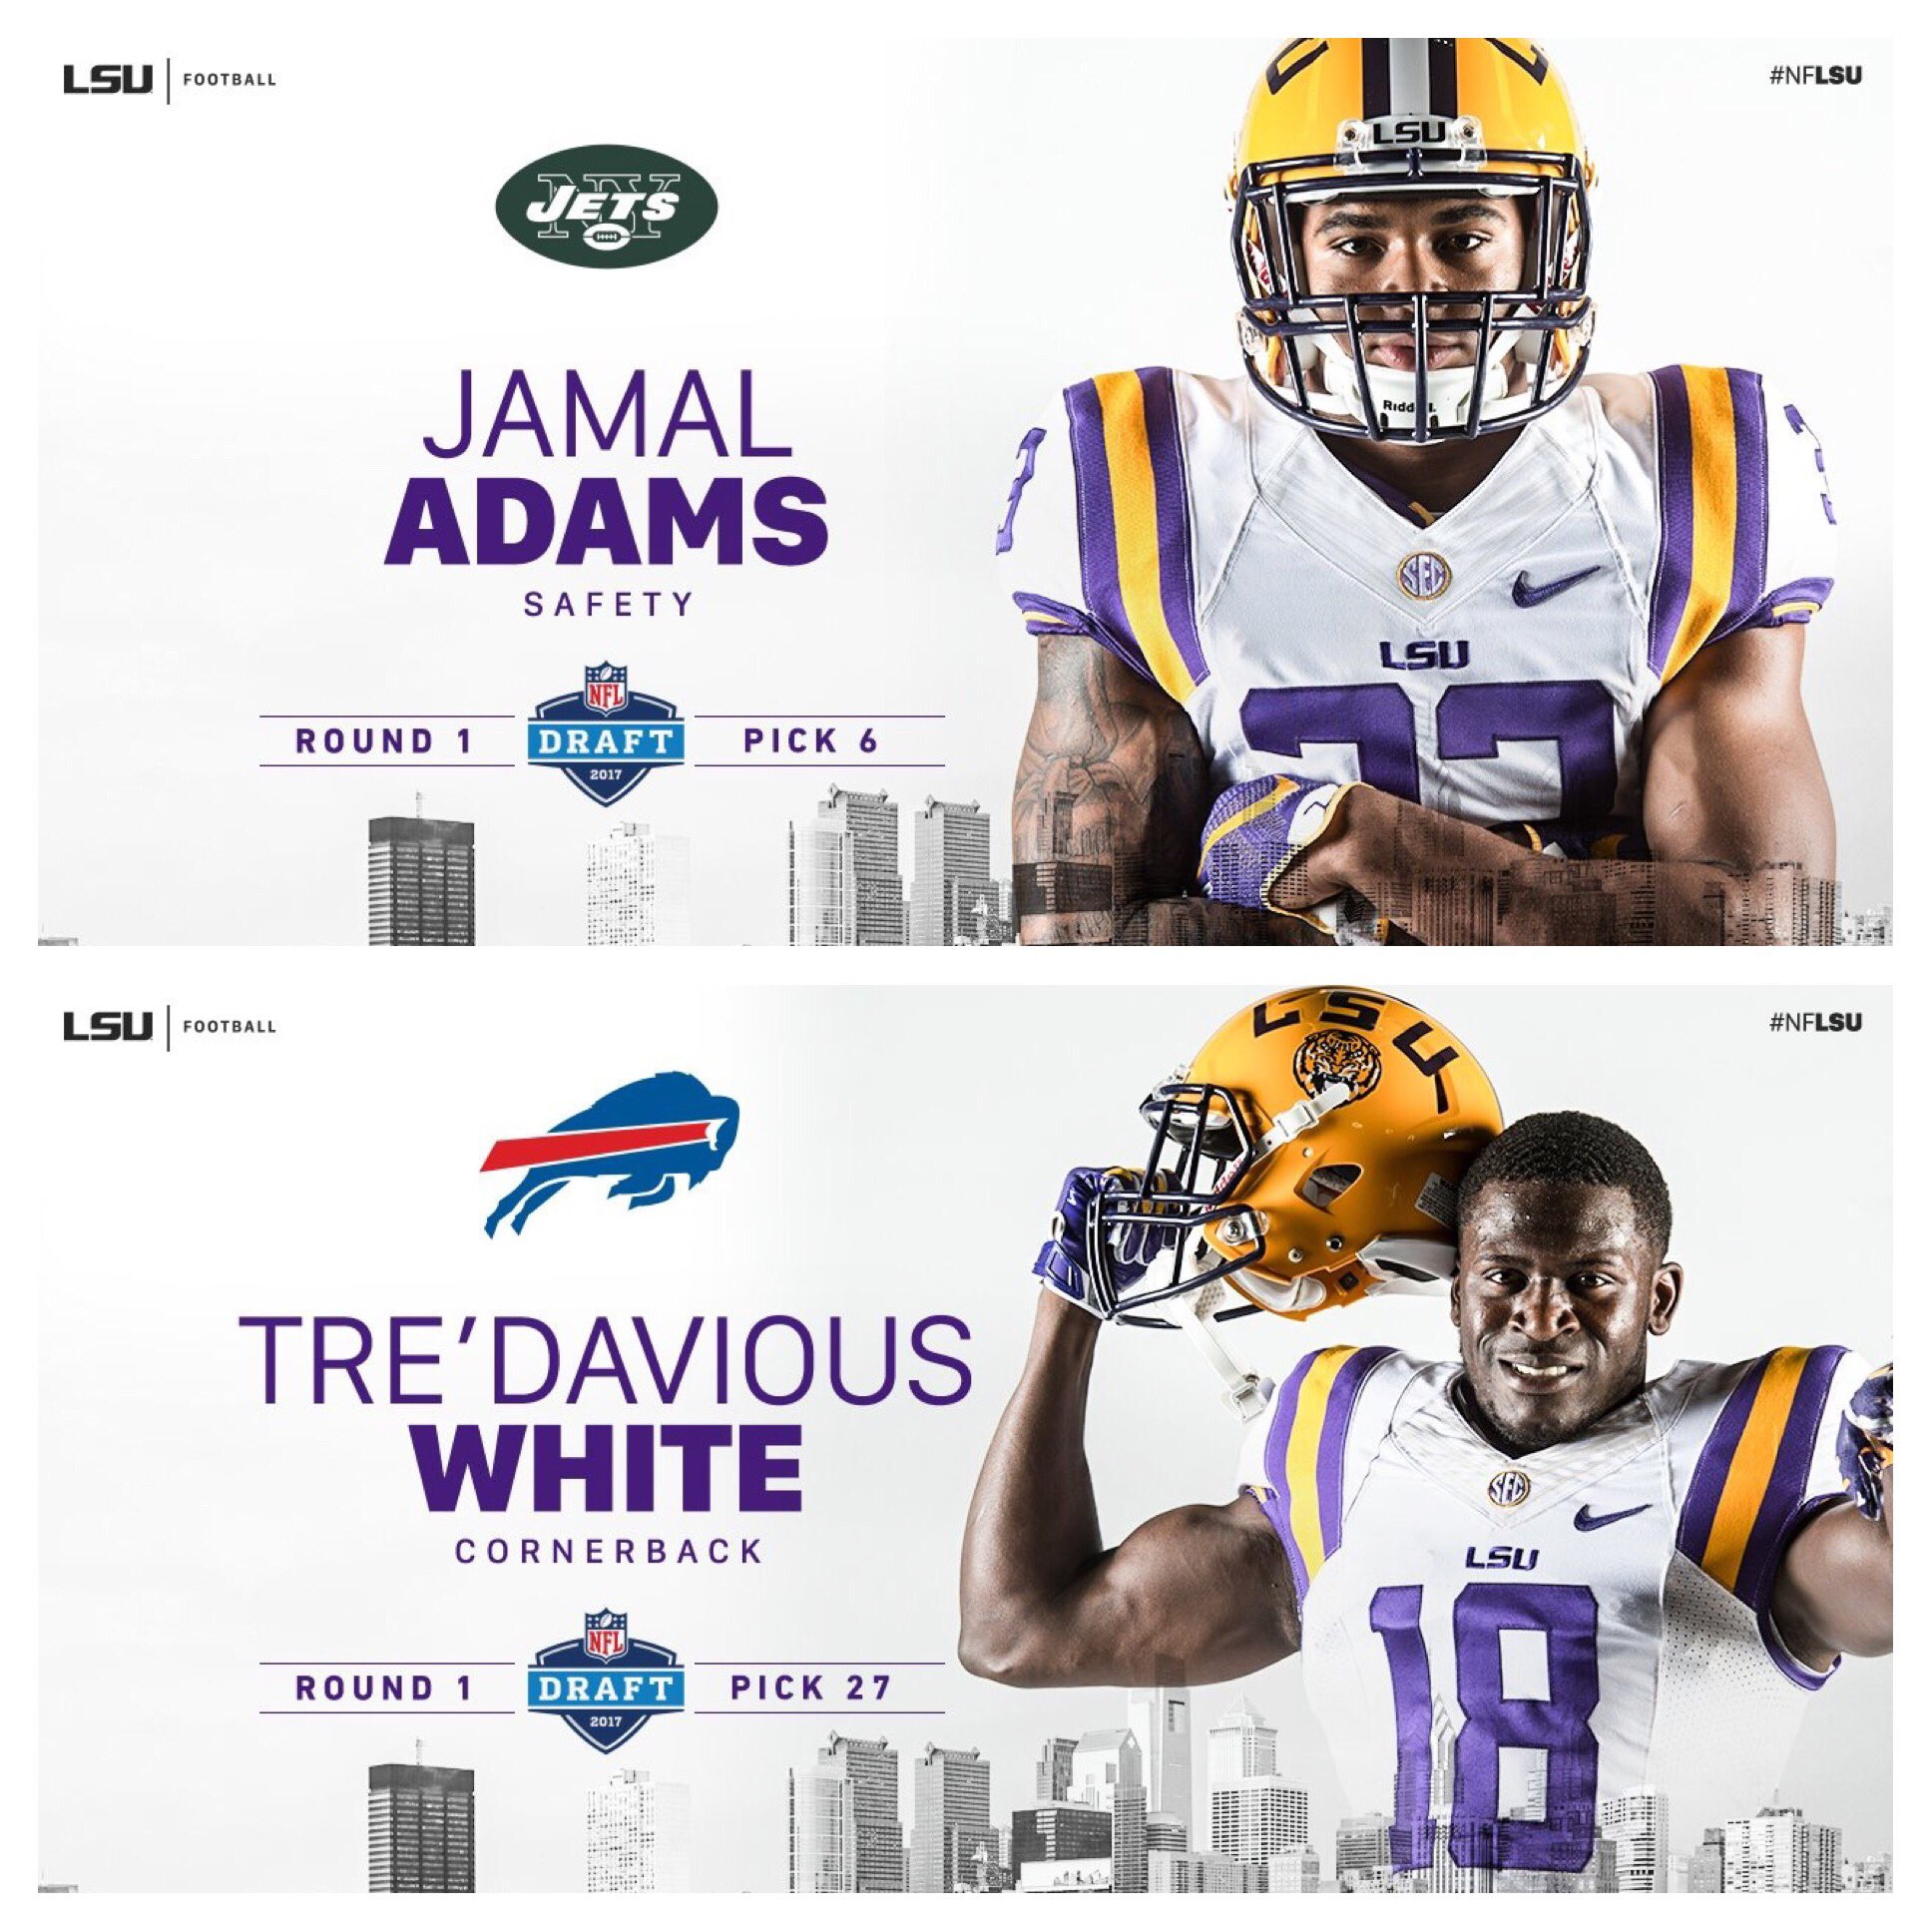 #DBU @TheAdams_era @TreWhite16 https://t.co/x4Urif5BP2